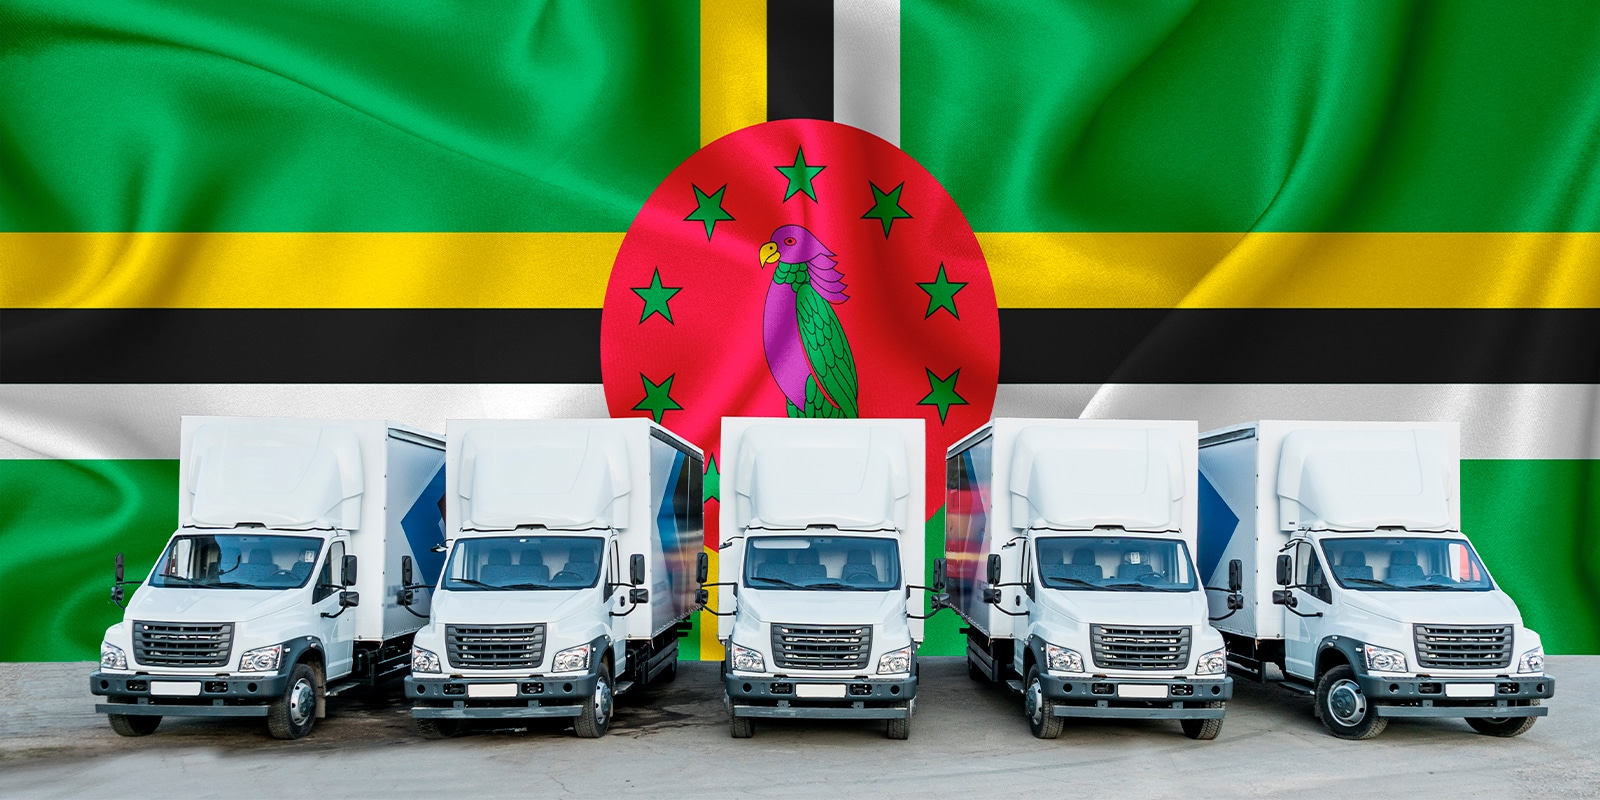 Dominica is a nation that thrives on its financial service sector, its tourism industry, and its ability to attract new foreign businesses to its shores